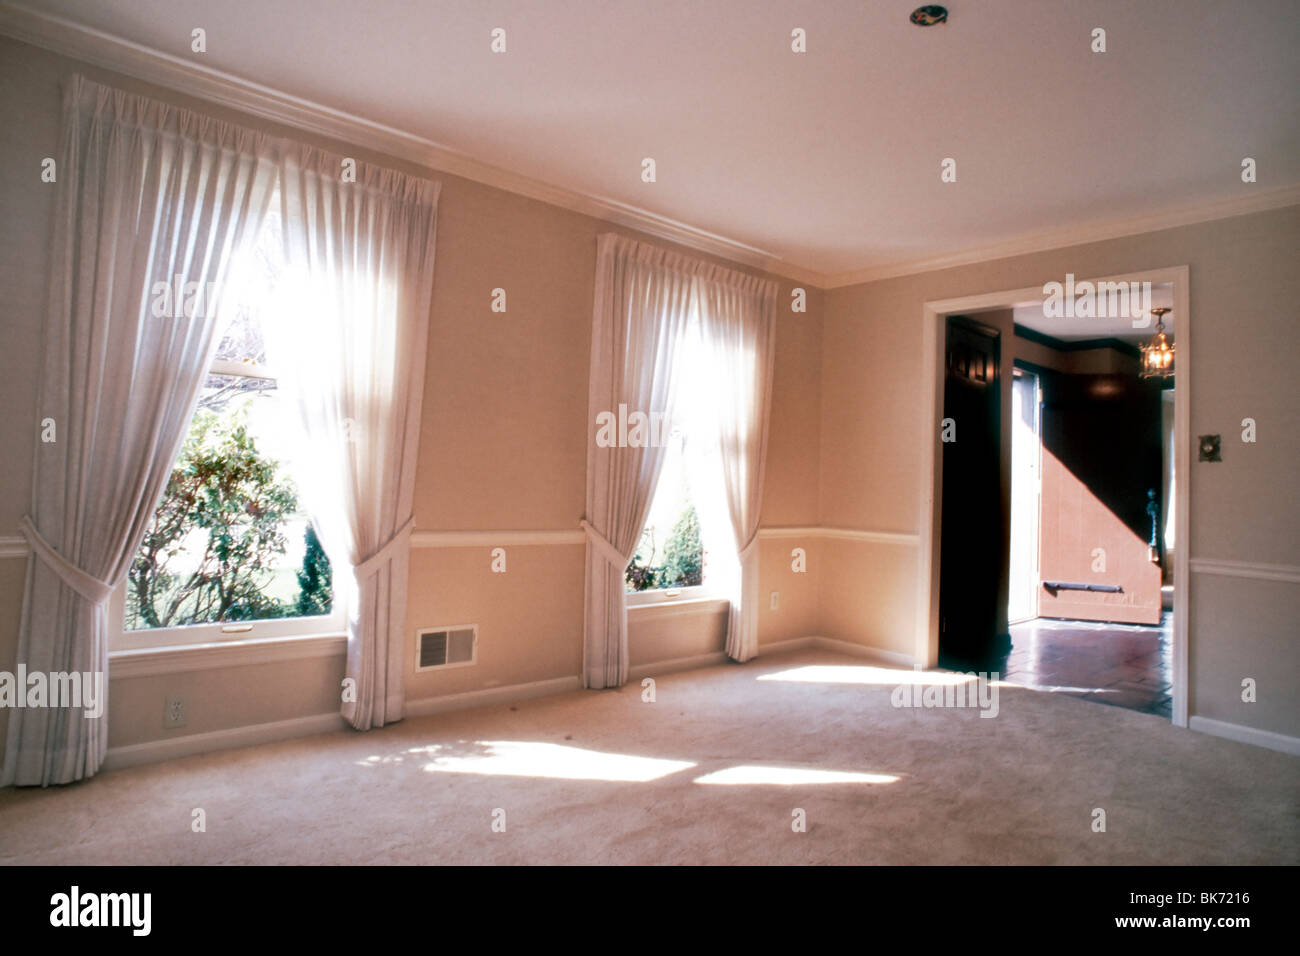 Pittsburgh, PA, Interior Showcase Home, Luxury Living Room With Two  Windows, Empty.